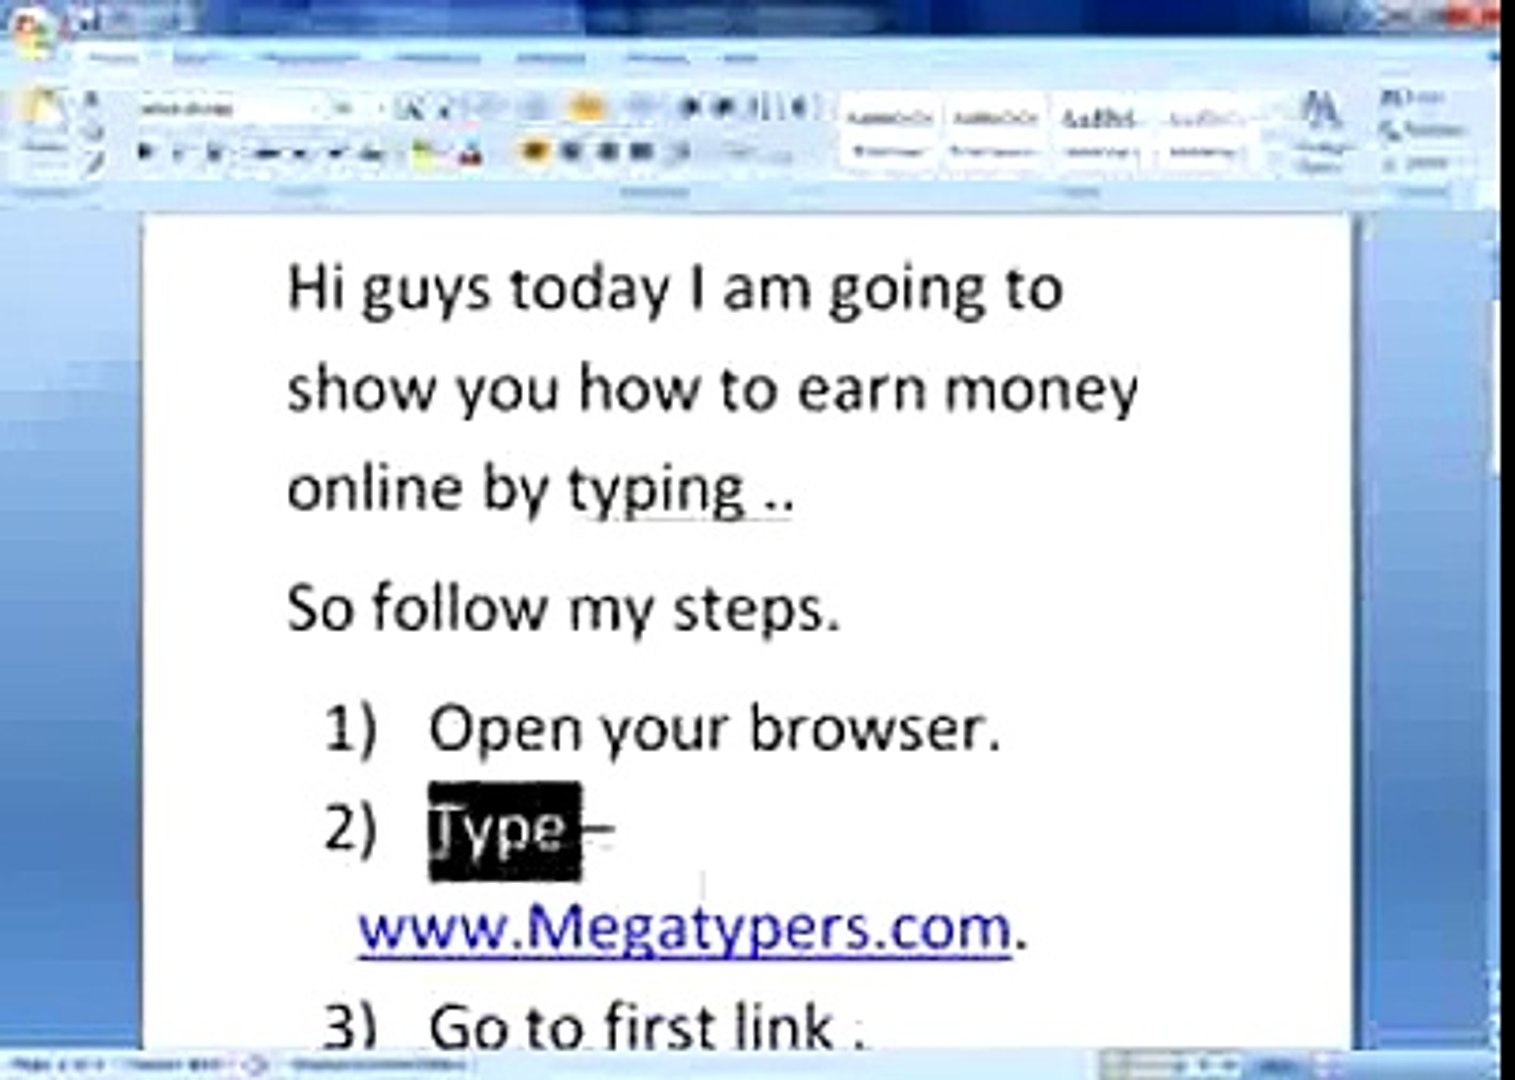 HOW TO EARN MONEY BY TYPING ONLINE